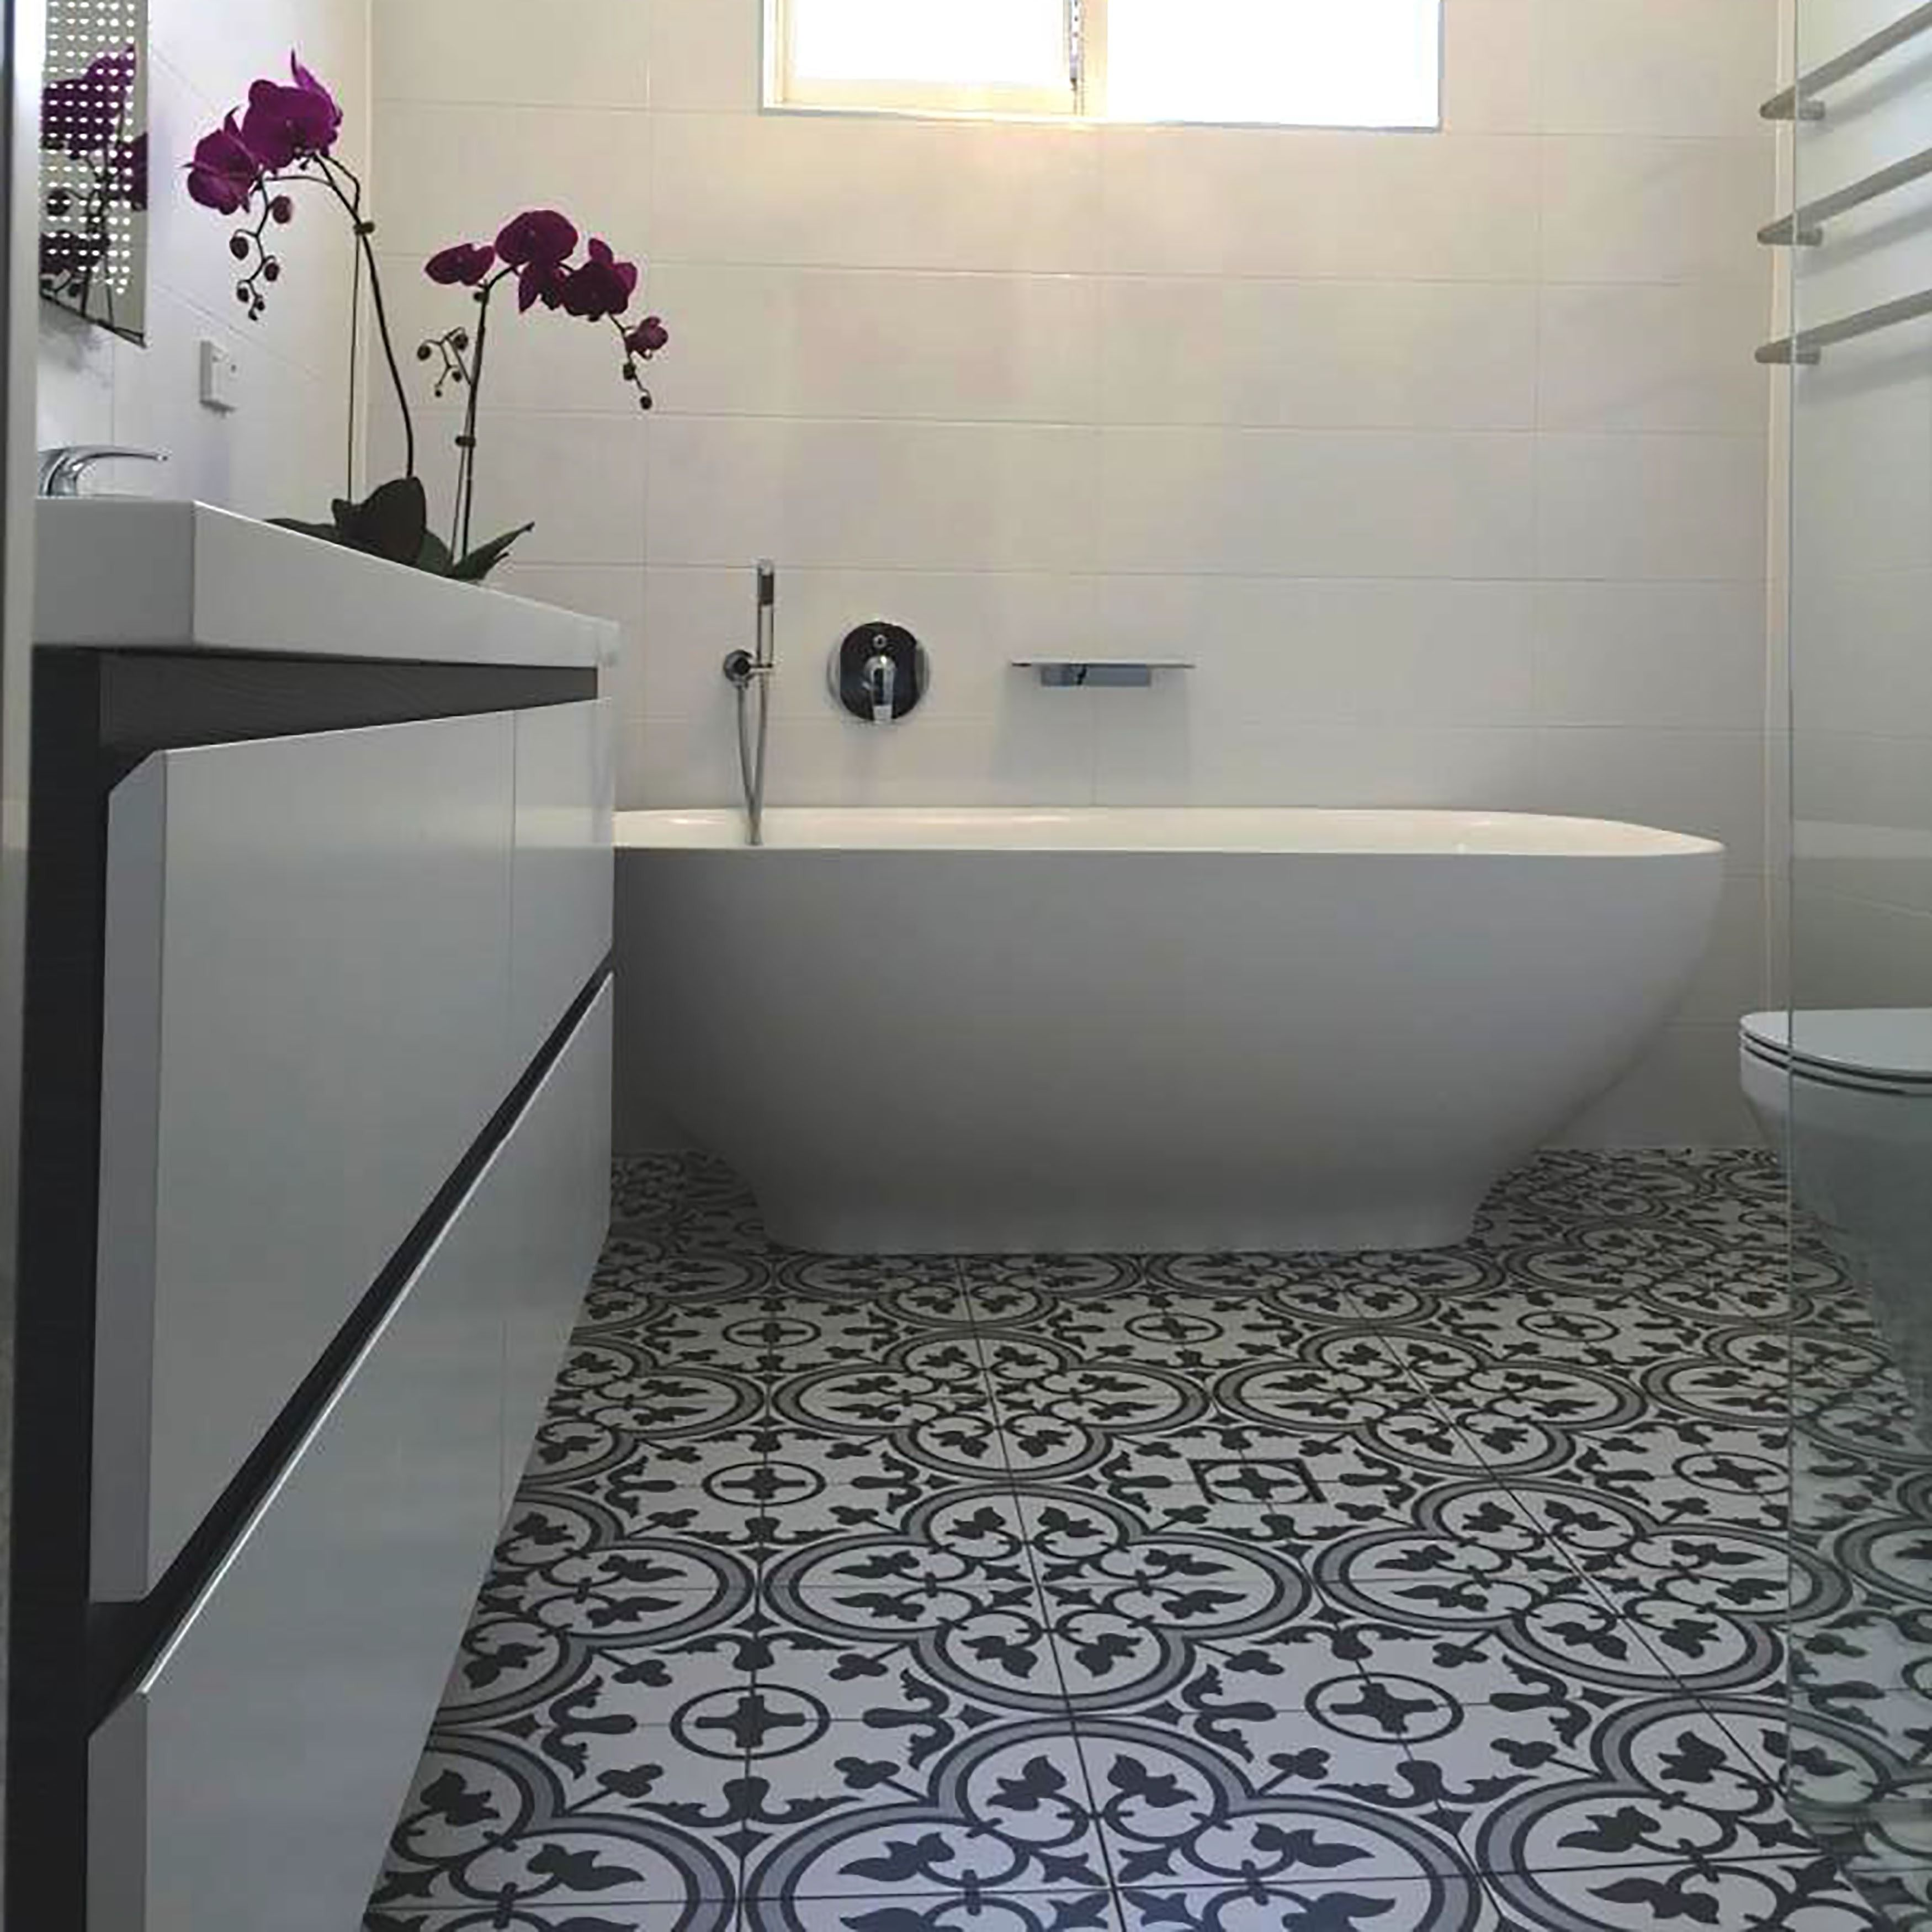 The Somertile 9 5x9 5 Inch Art Grey Porcelain Floor and Wall Tile